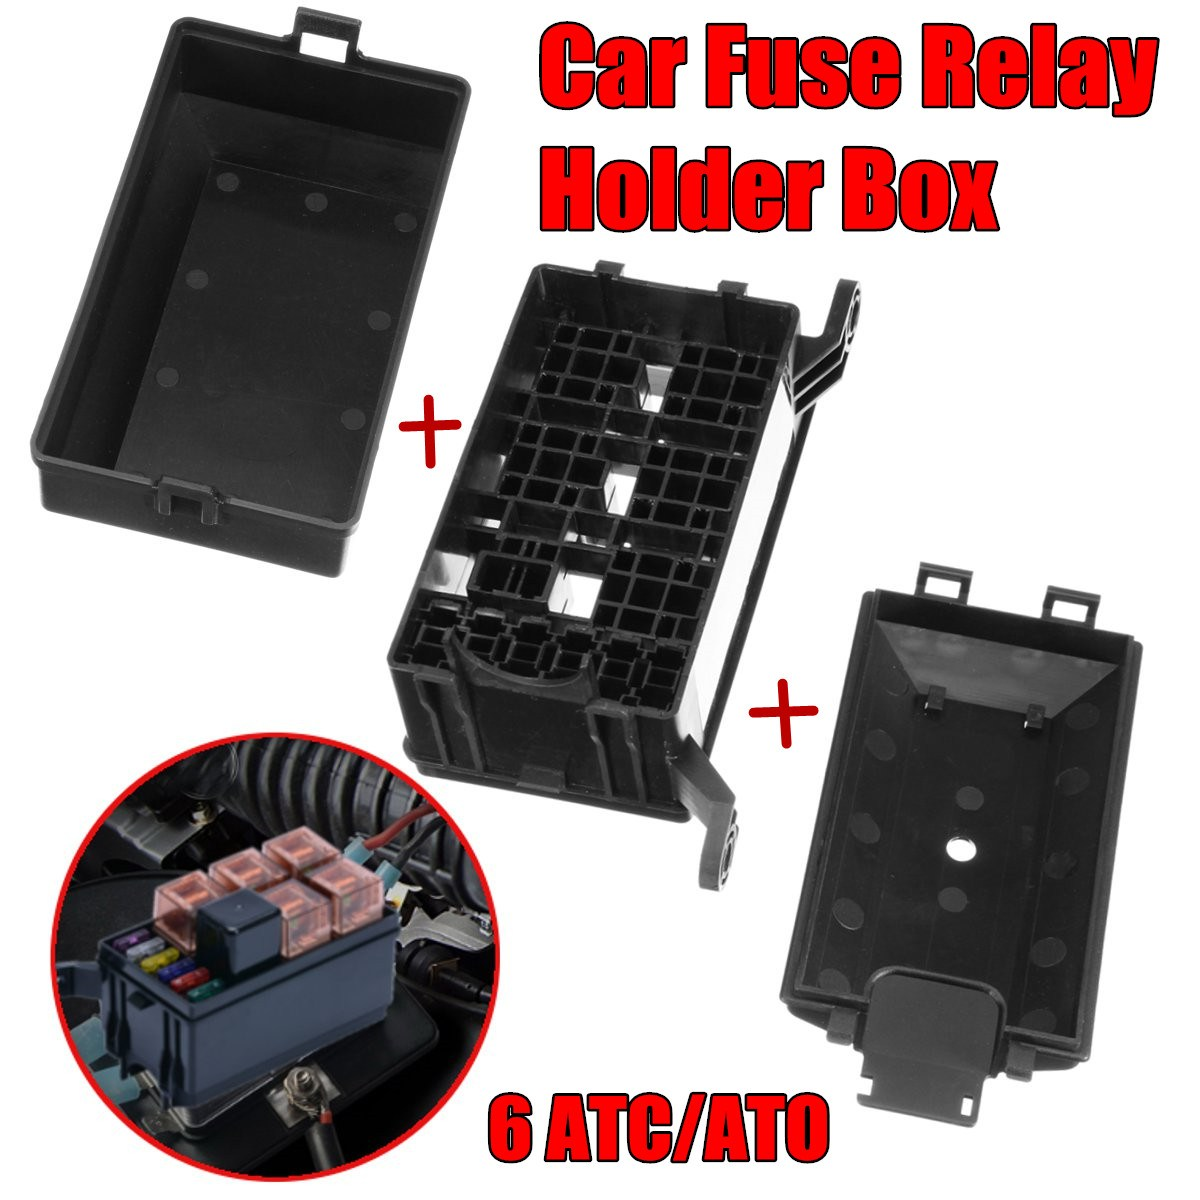 Auto Car Fuse Relay Box Relay Socket Holder 6 Relay 6 ATC/ATO Fuses  Universal-in Car Switches & Relays from Automobiles & Motorcycles on  Aliexpress.com ...